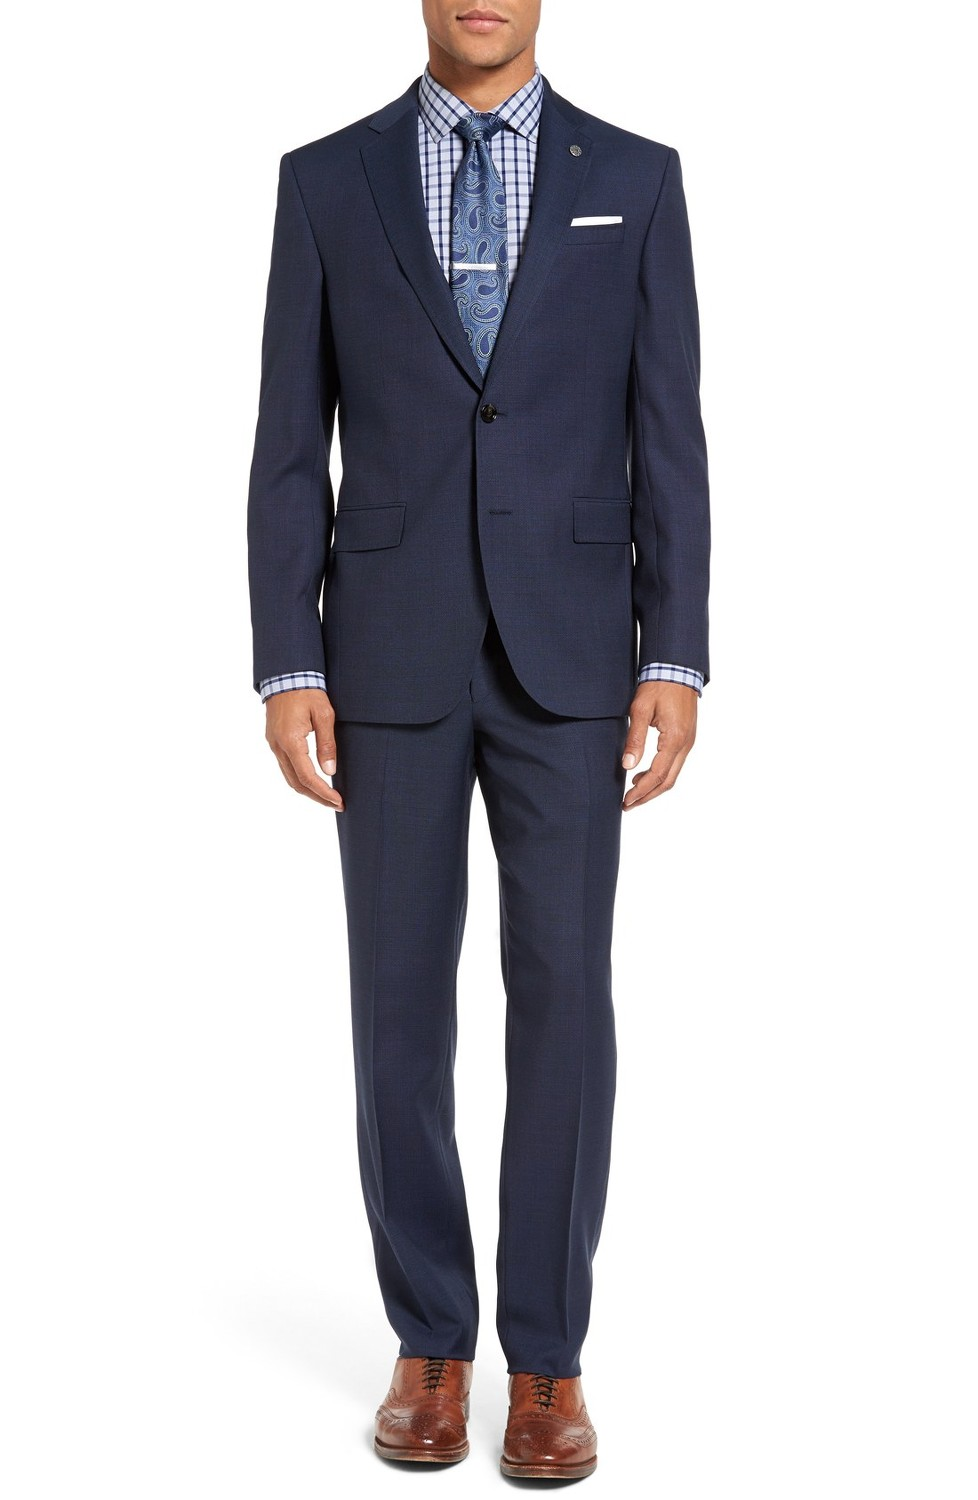 3.) $695  Ted Baker London - Jay Trim Fit Solid Wool Suit